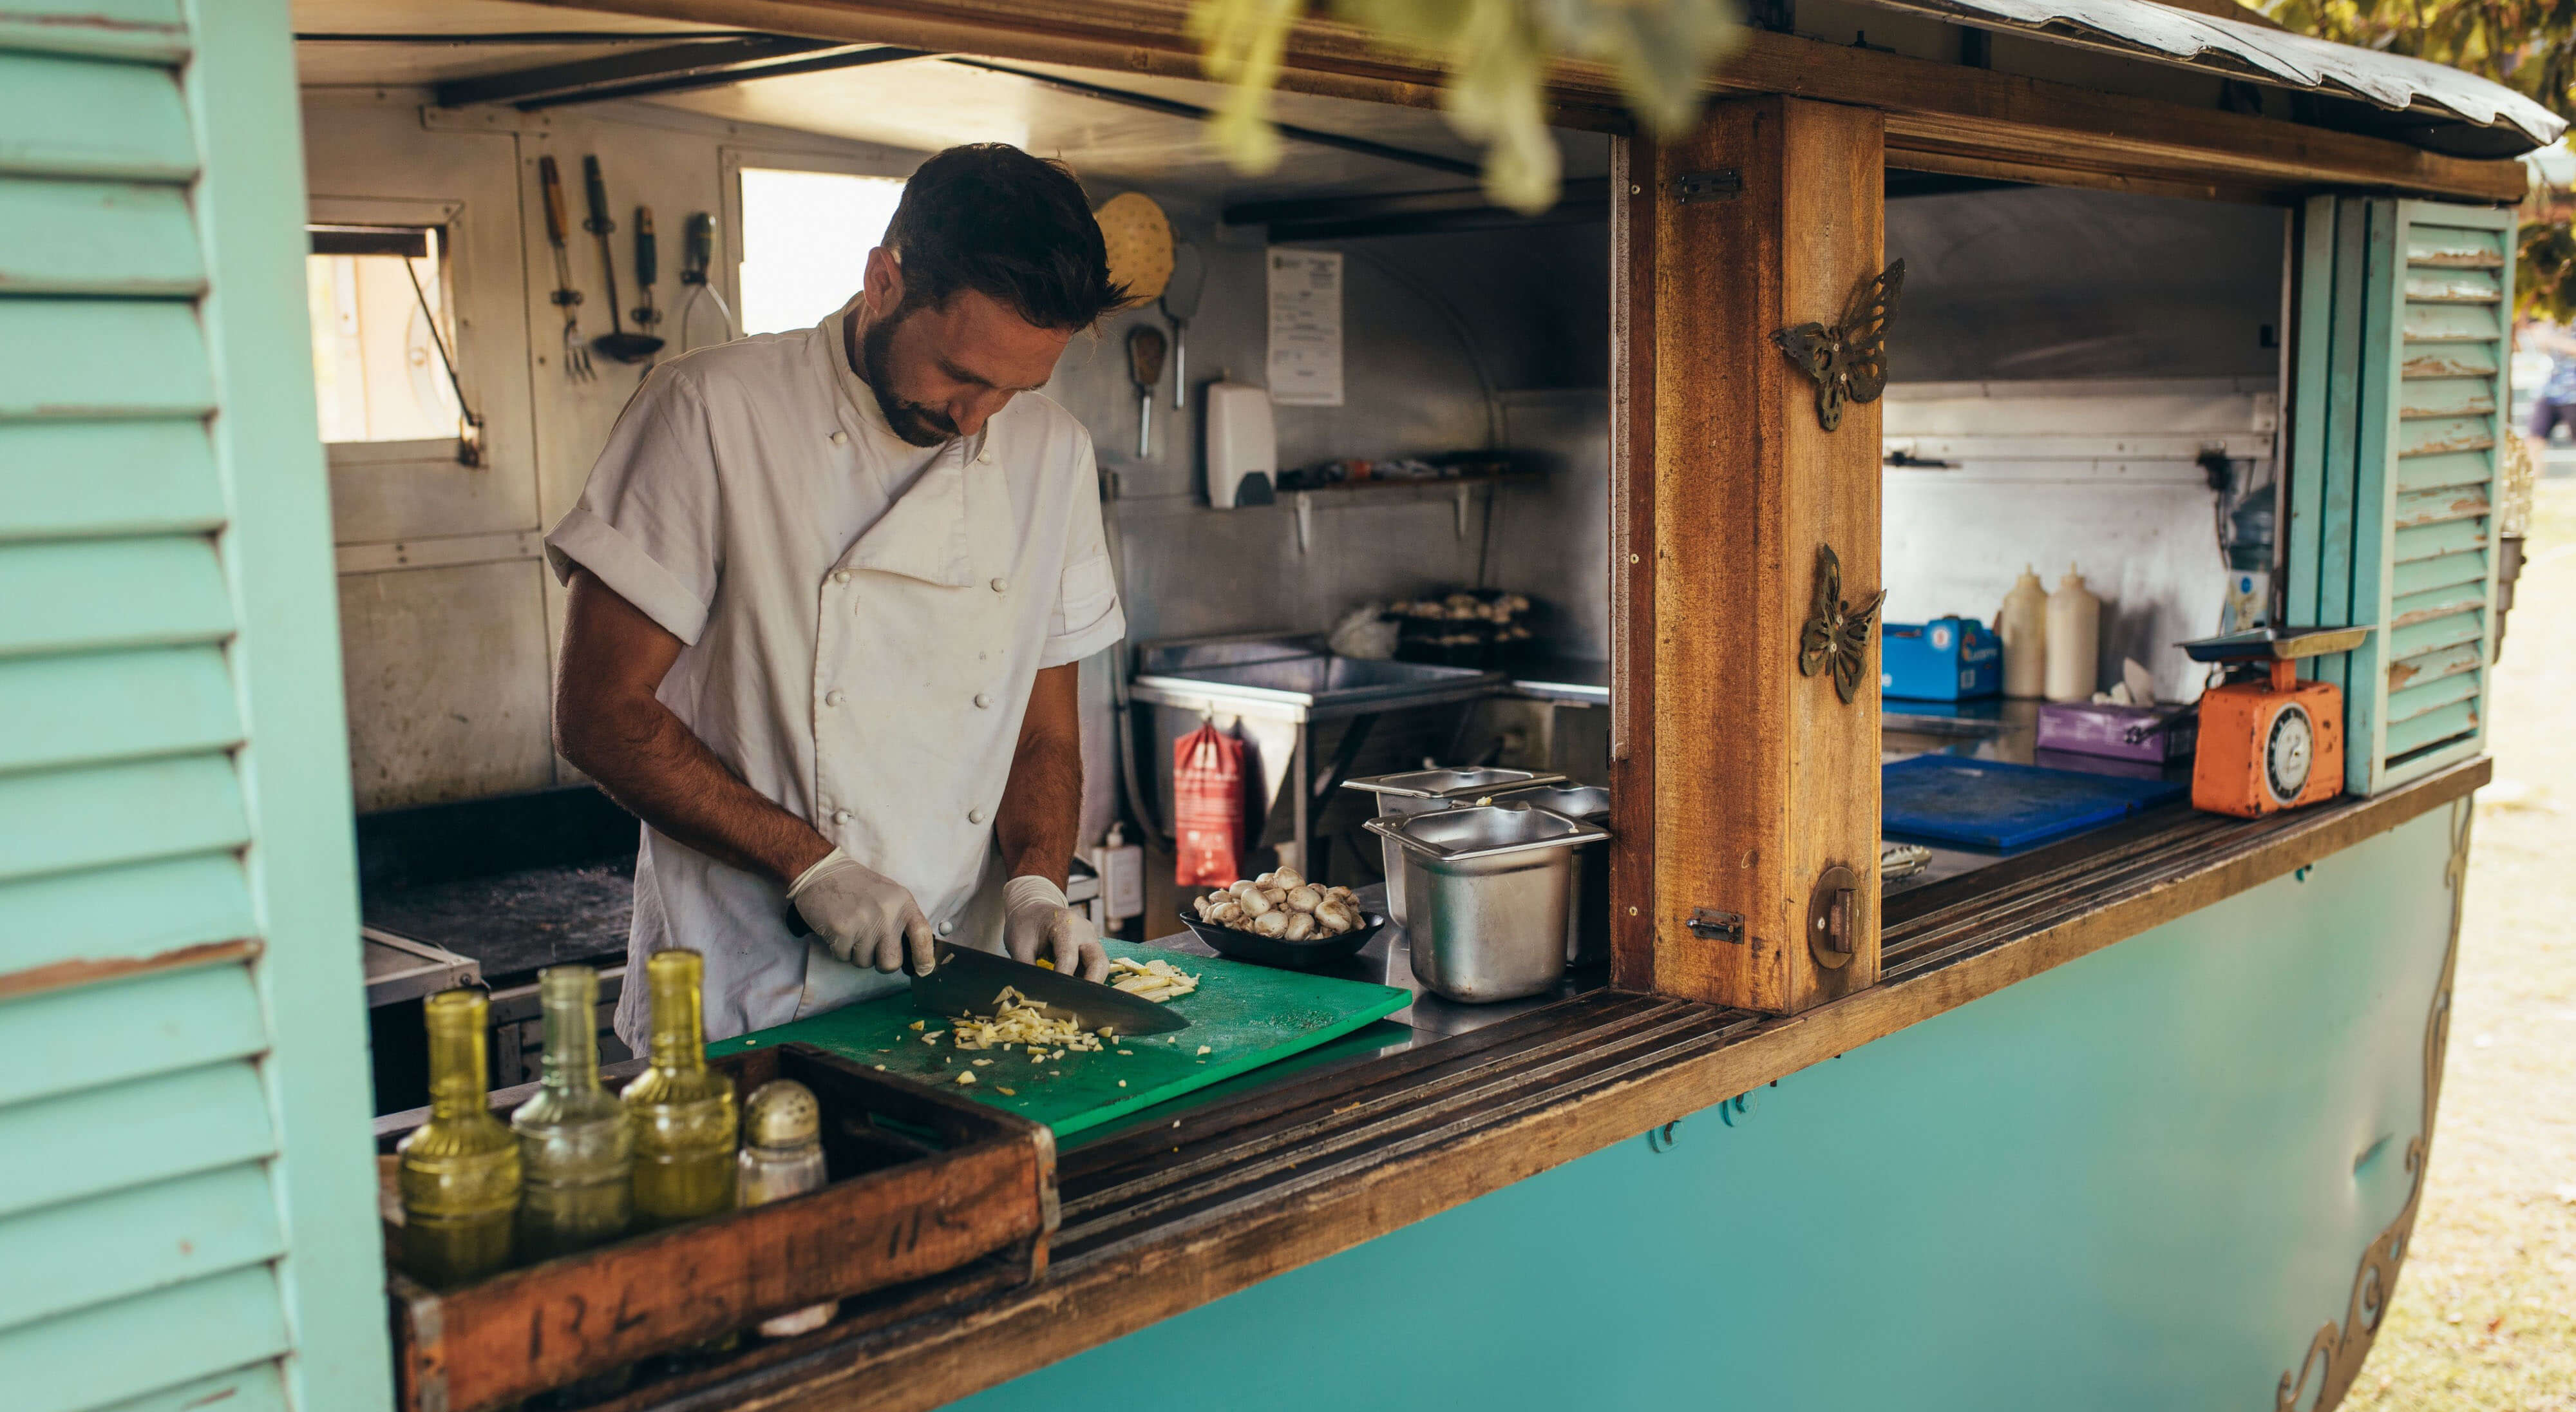 food truck owner chopping ingredients inside a turquoise rustic-themed food truck